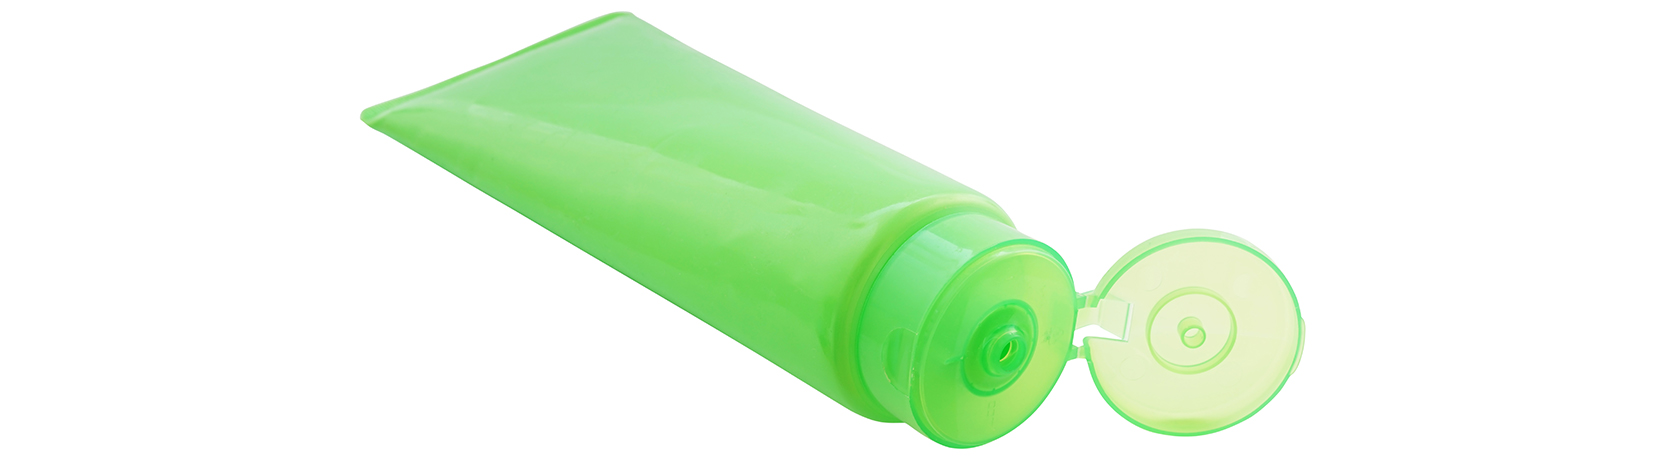 Green plastic tube with open living hinge lid